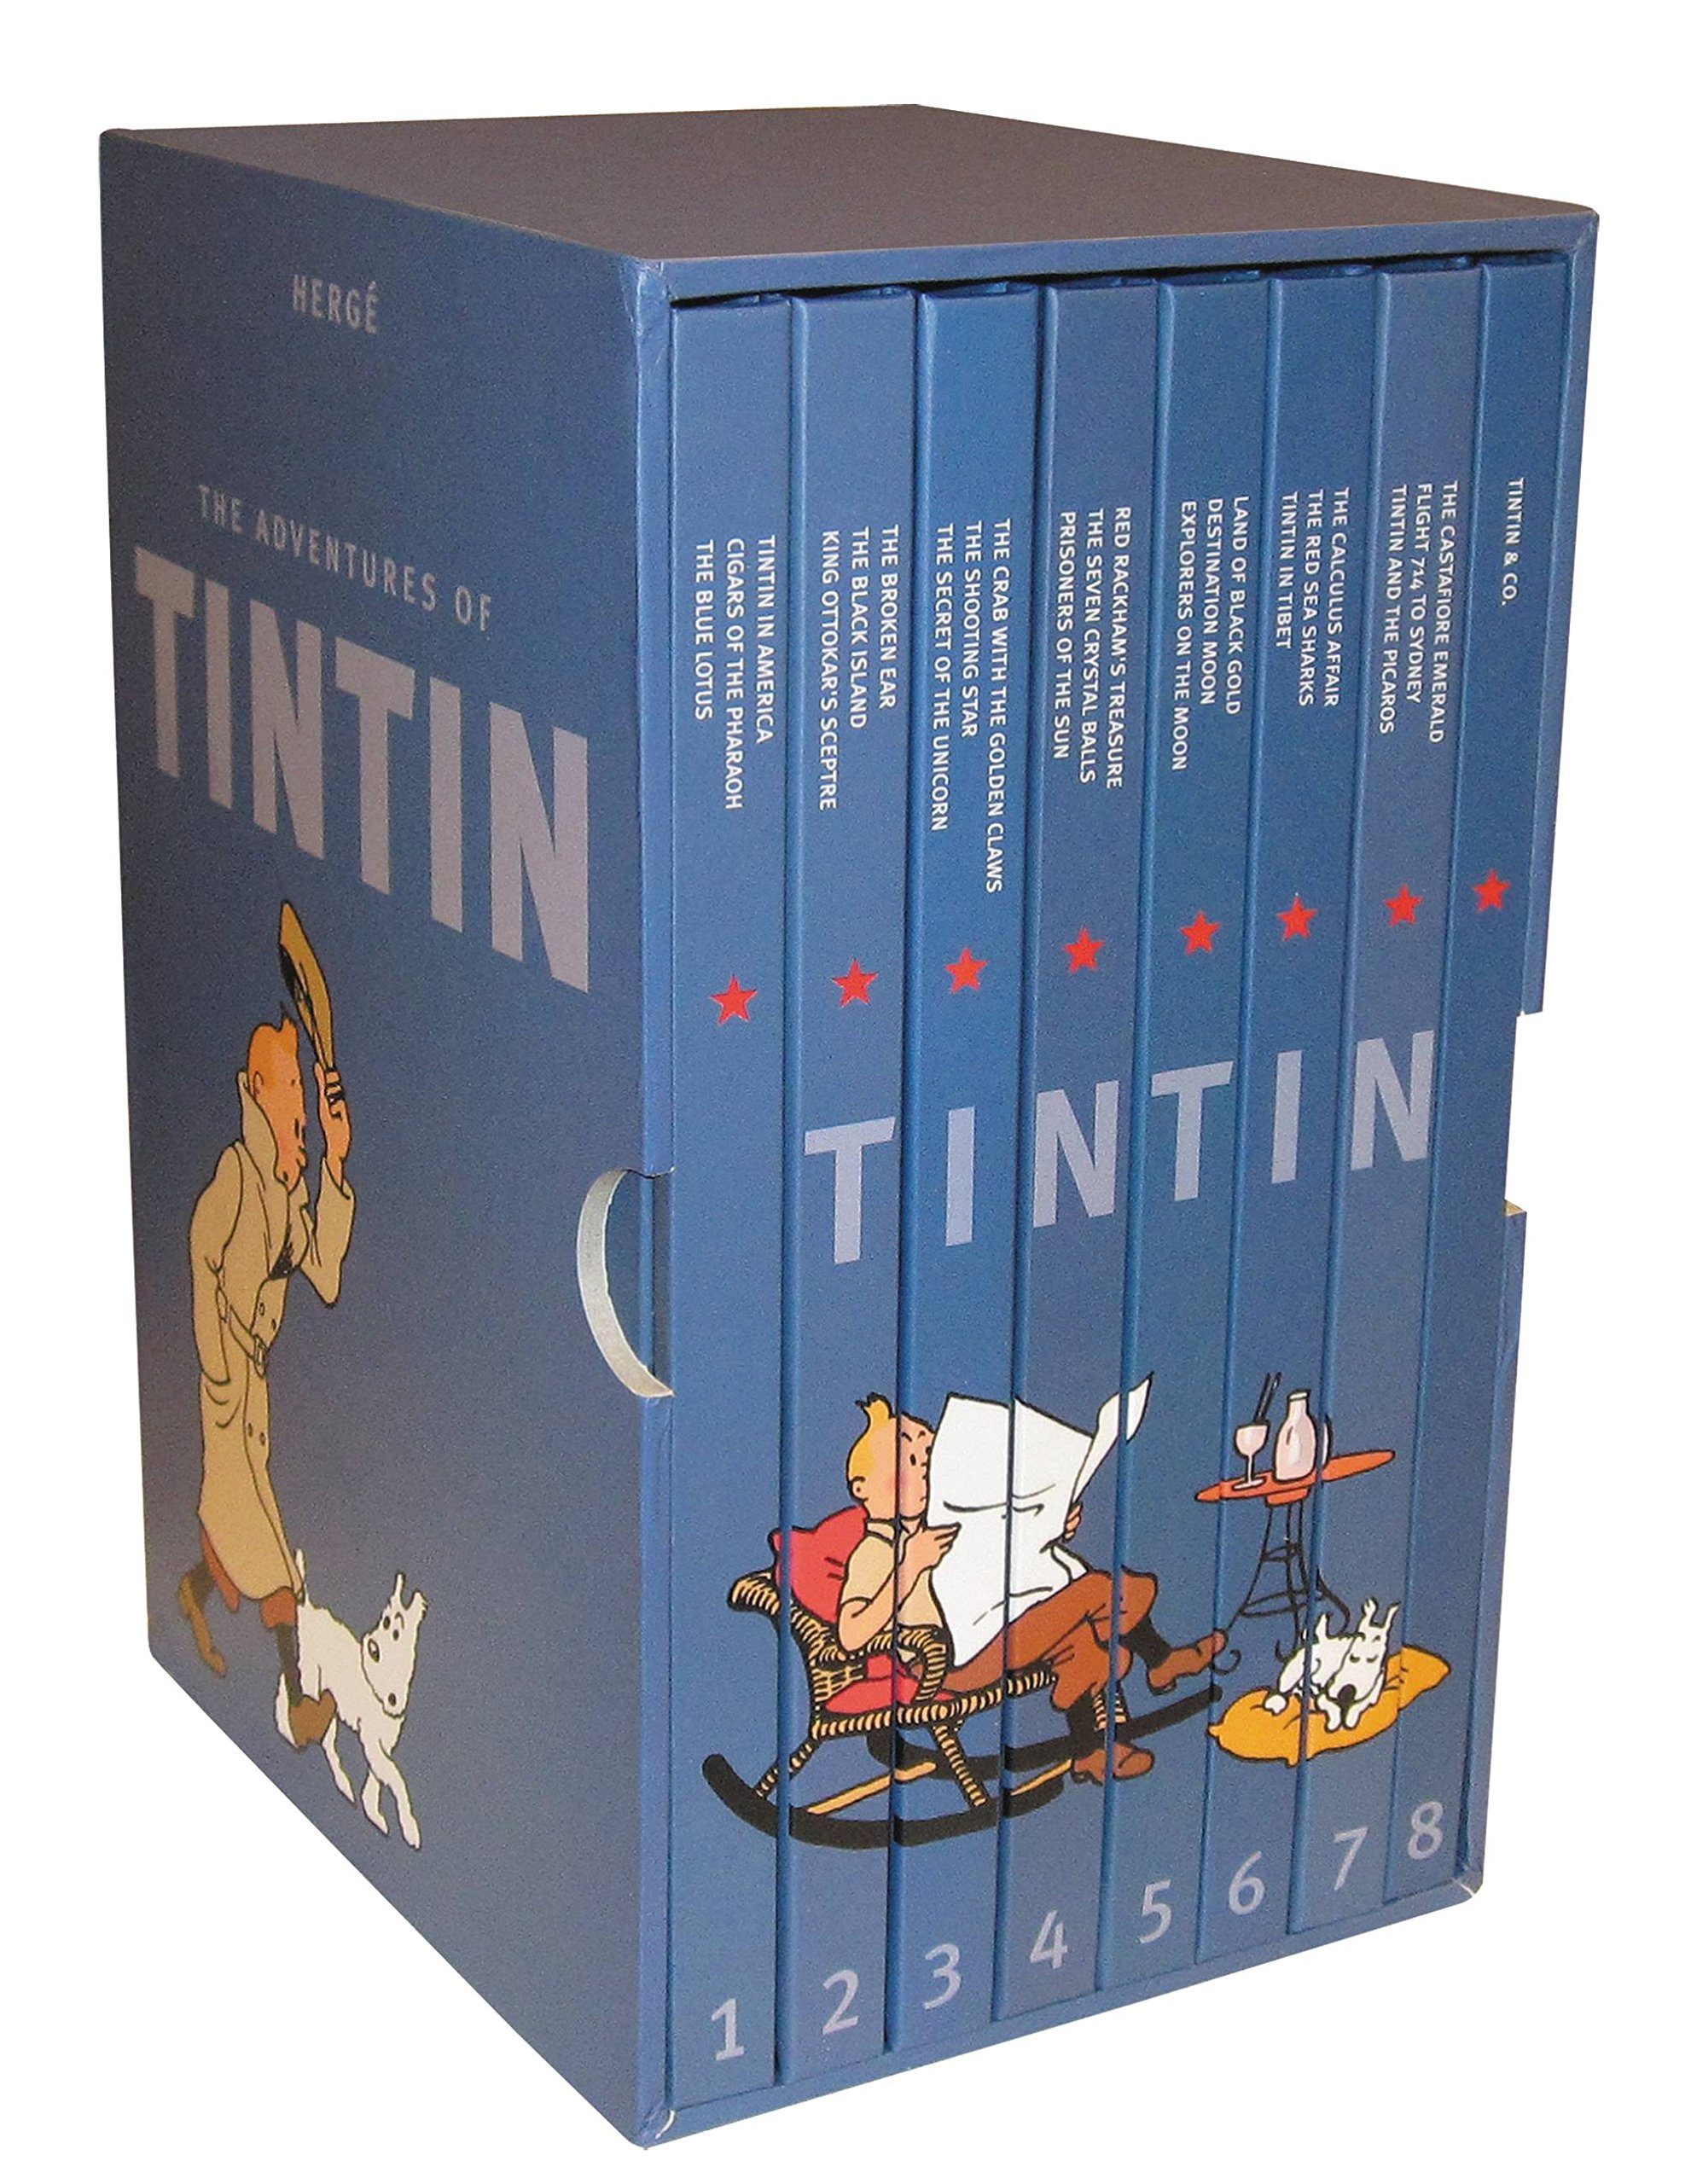 The Adventures of Tintin: Collector's Gift Set by Little, Brown Books for Young Readers